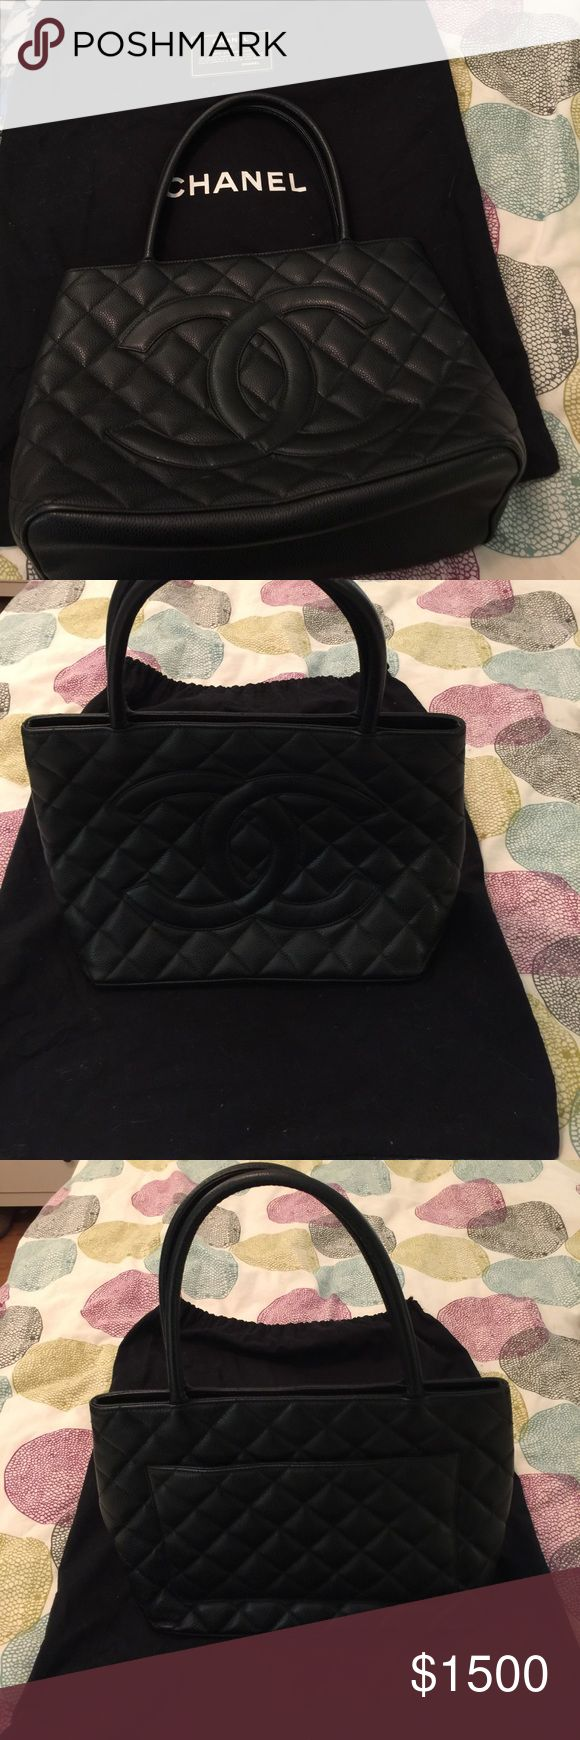 Authentic Chanel Bag Authentic Chanel Bag Black Leather, Pristine Condition. No markings or scratches. Included is card of authenticity and dust bag. Chanel Bags Totes